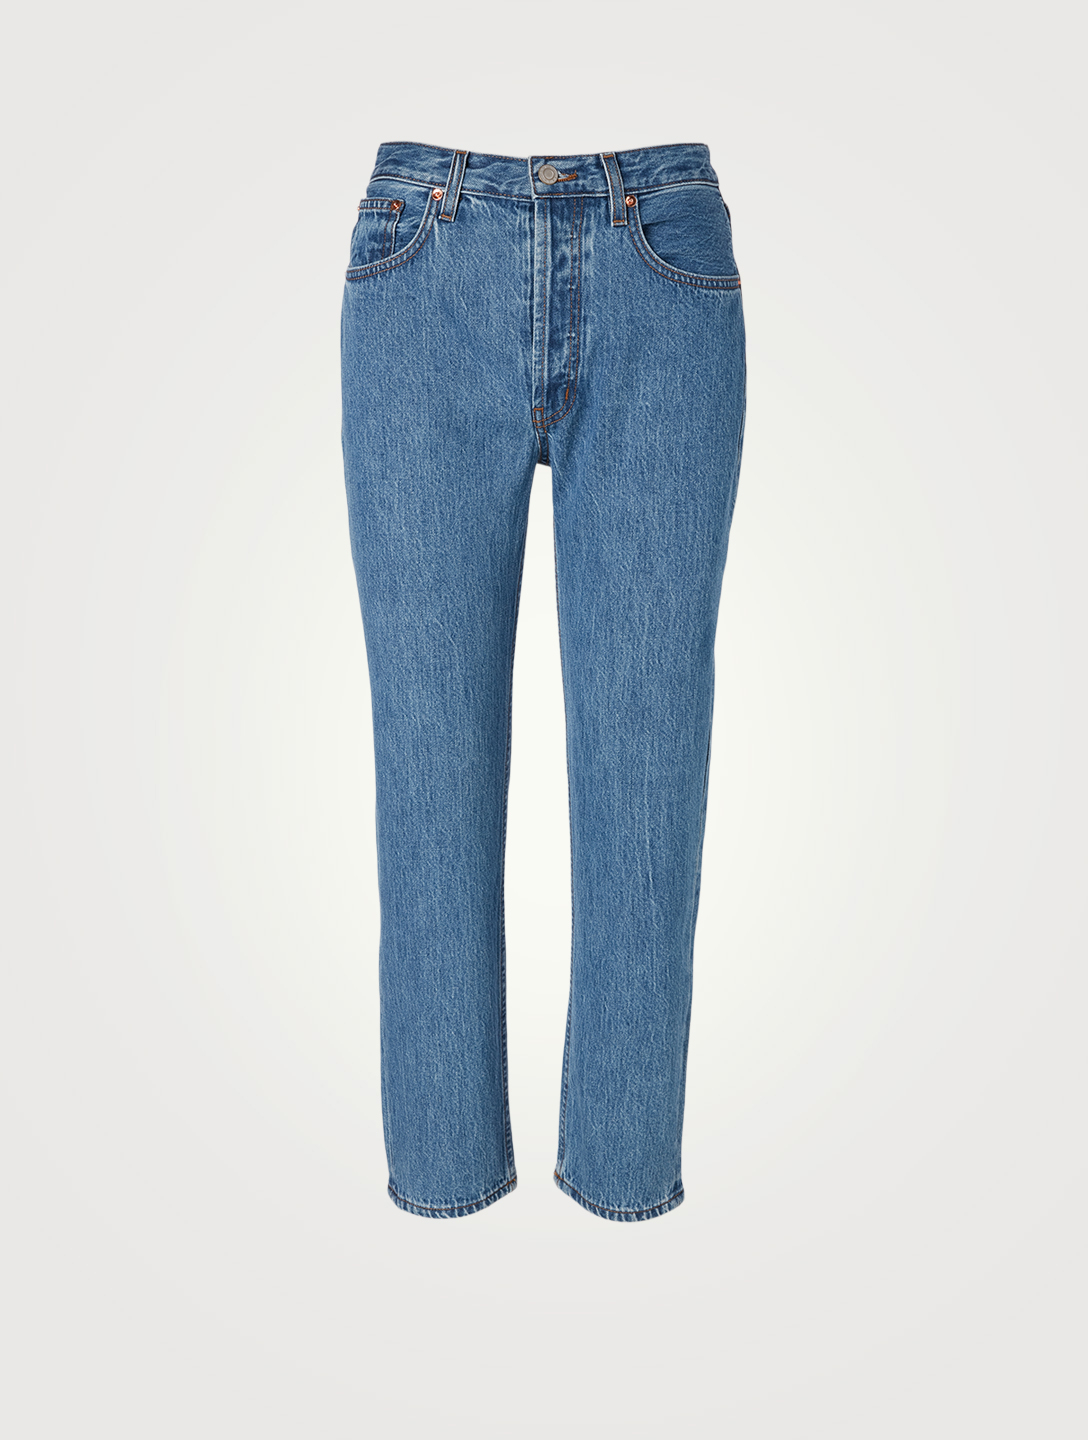 STILL HERE Tate Open Navy Crop Jeans Women's Blue